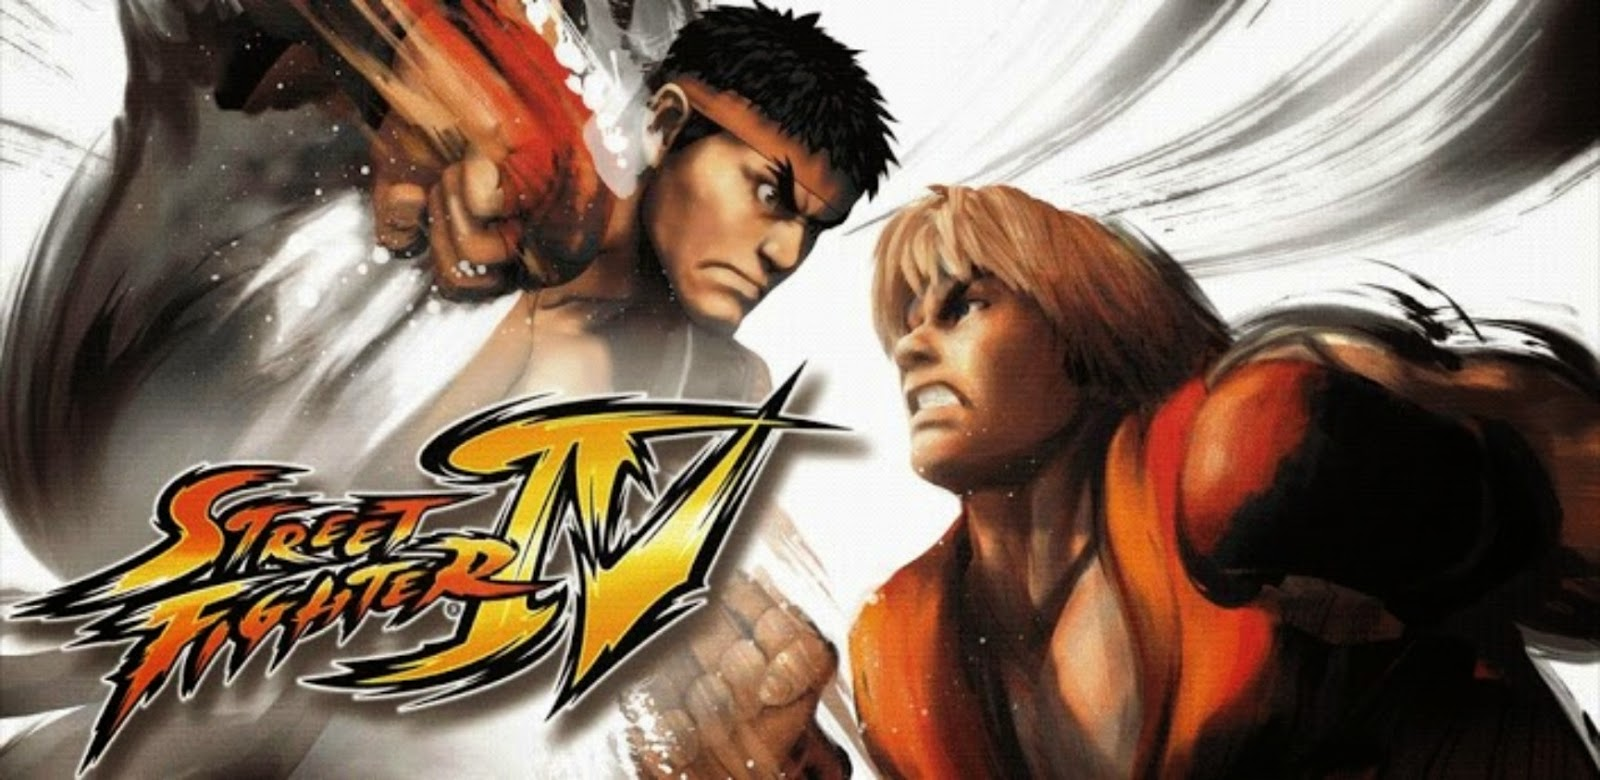 Street fighter 4 download android